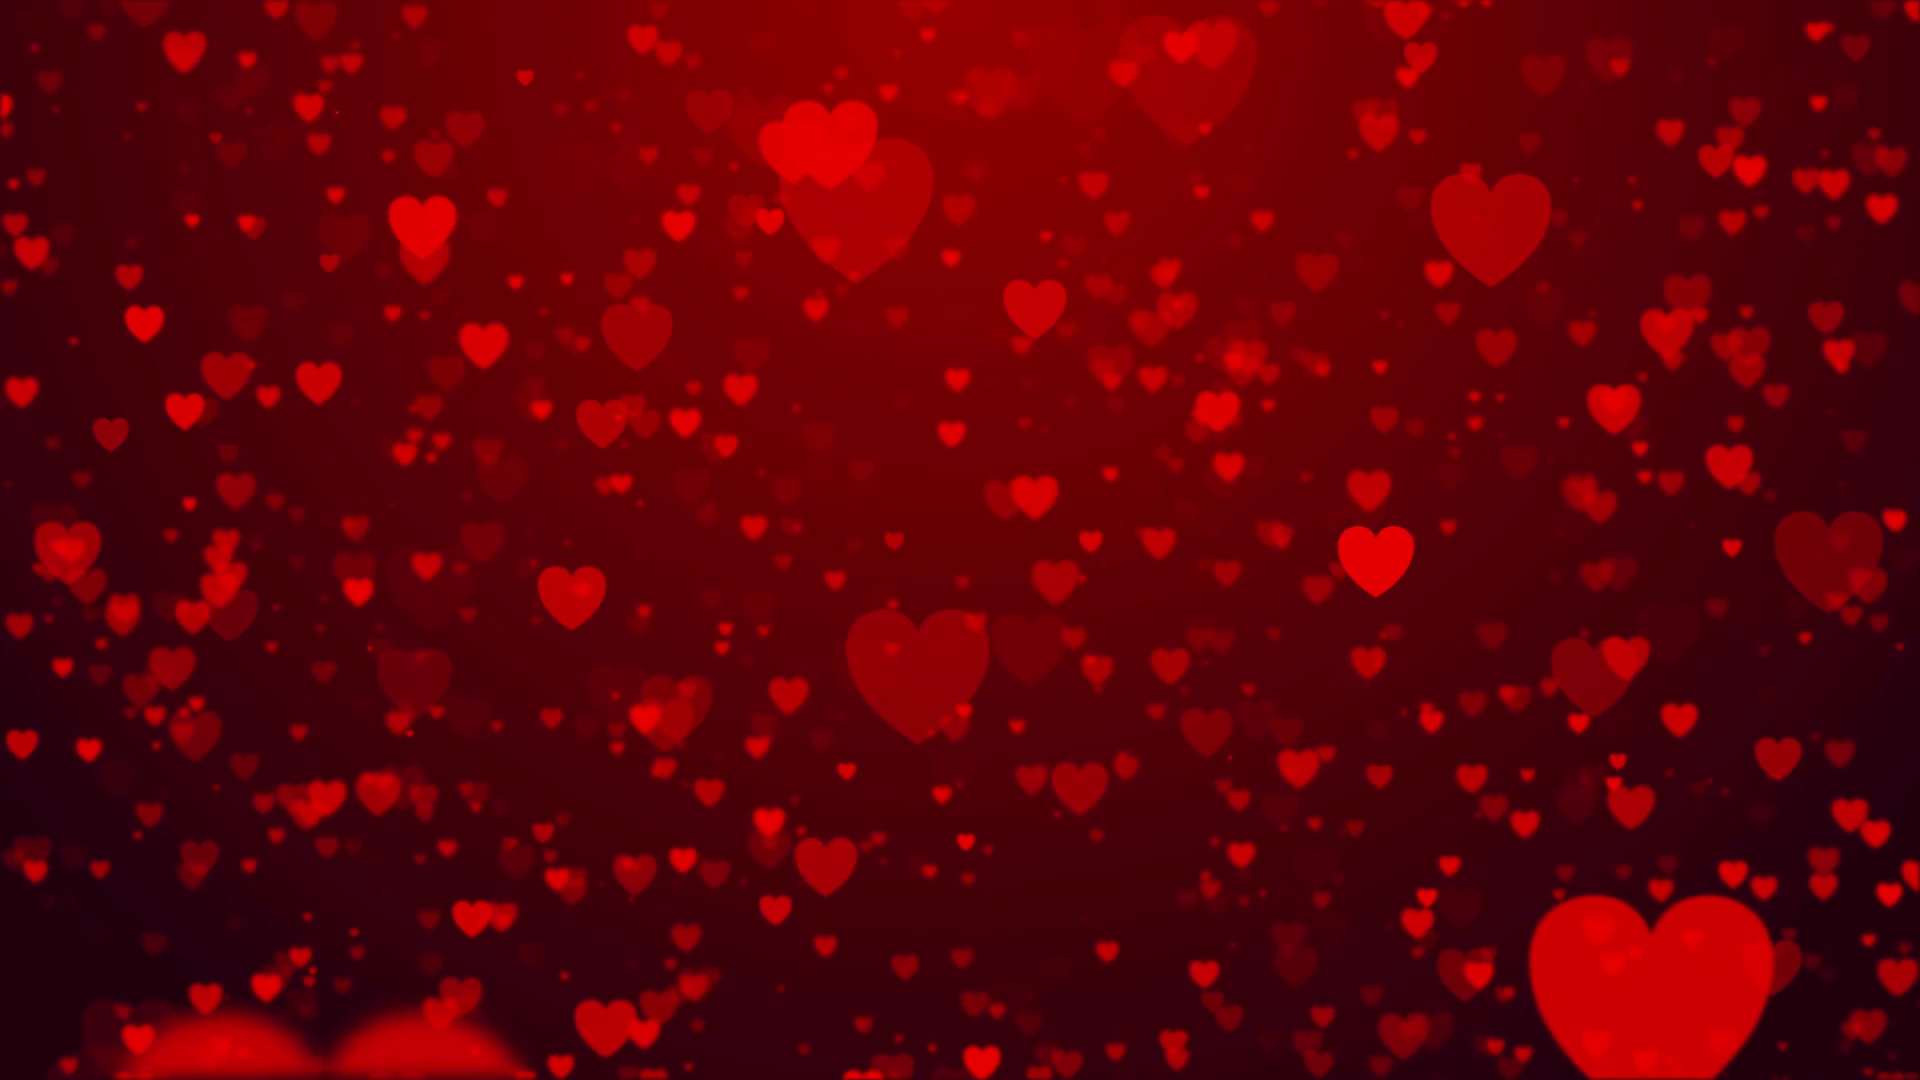 Valentine S Day Heart Love Wedding Anniversary Abstract Particles Background Loop Motion Background Storyblocks